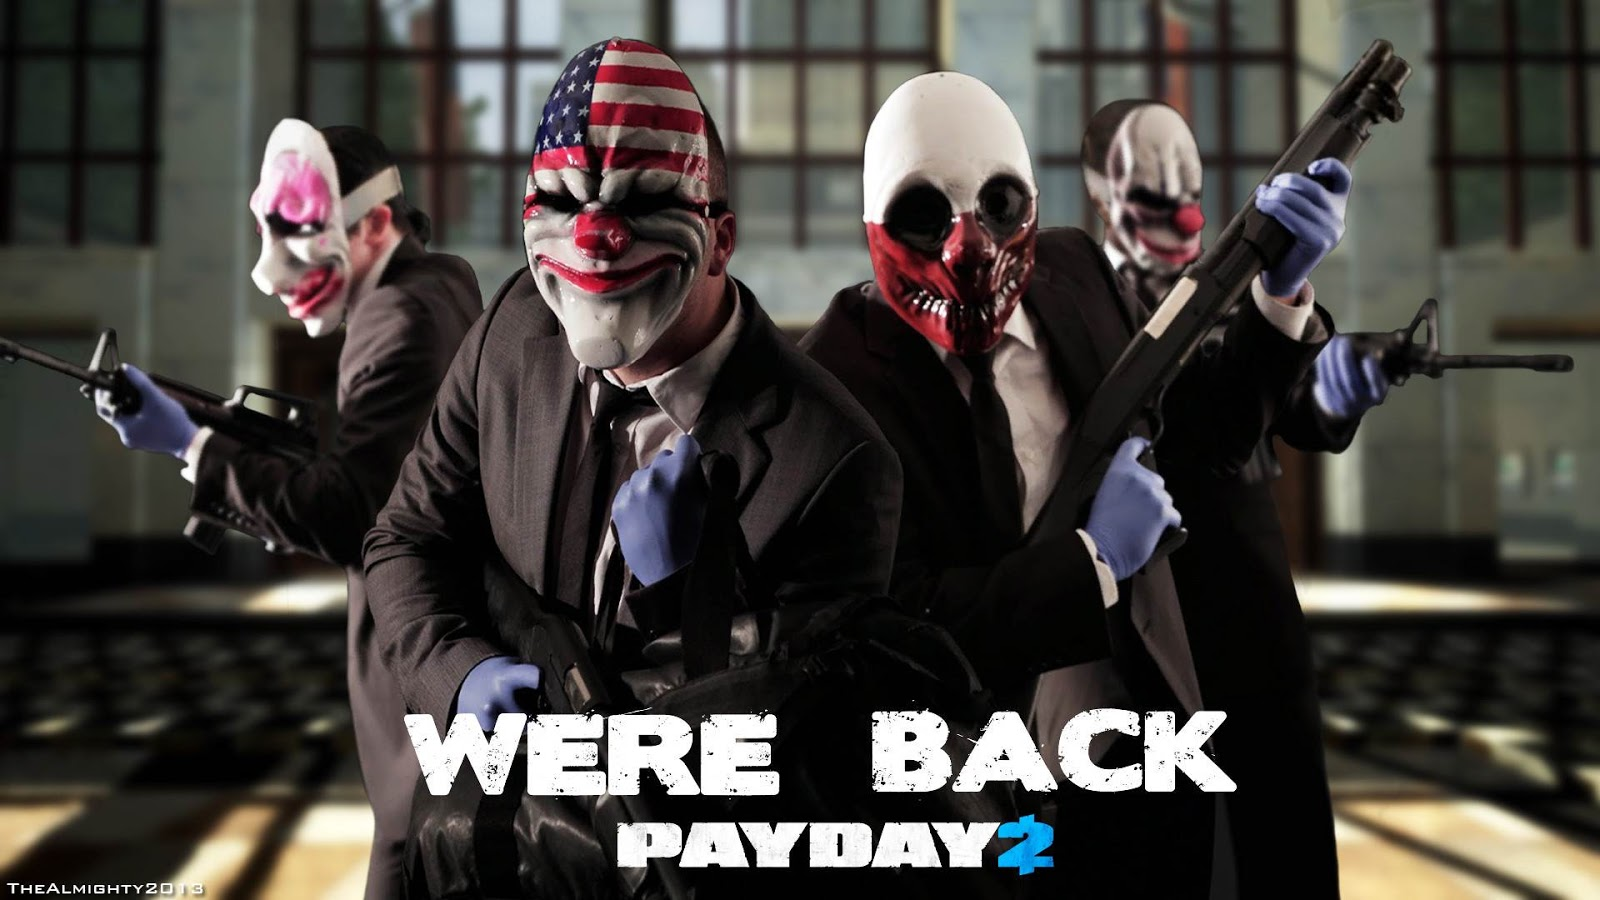 PAYDAY 2 is an action-packed, four-player co-op shooter